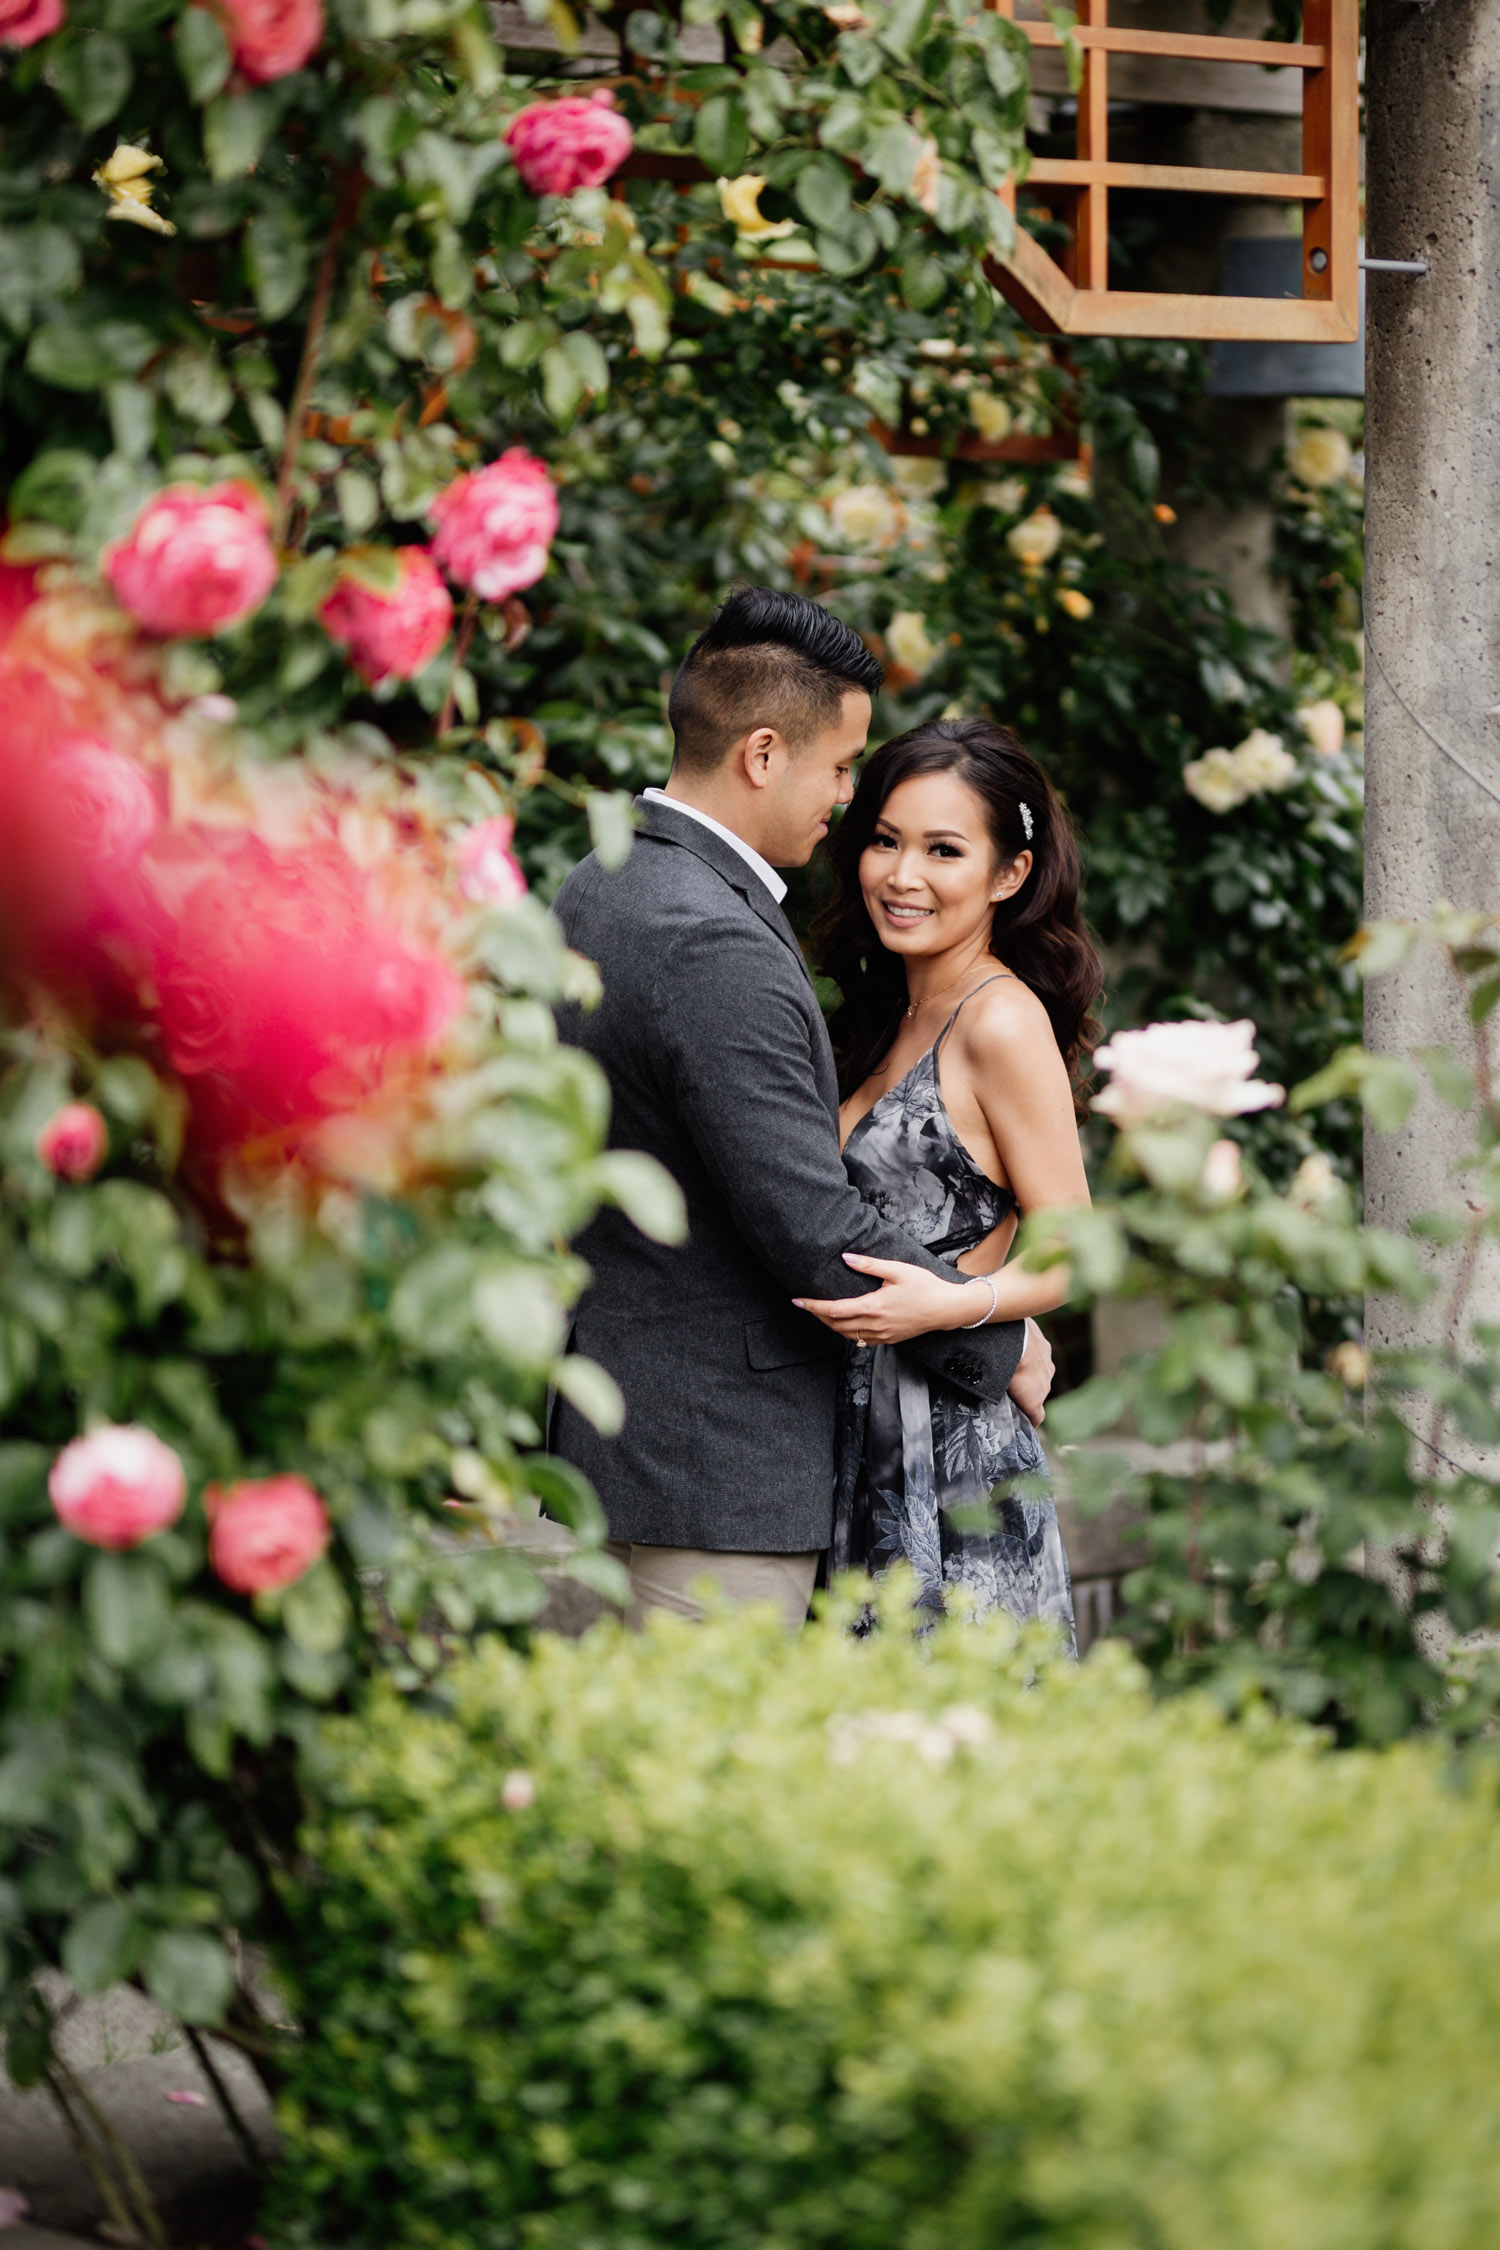 rose garden engagement photography at ubc vancouver bc